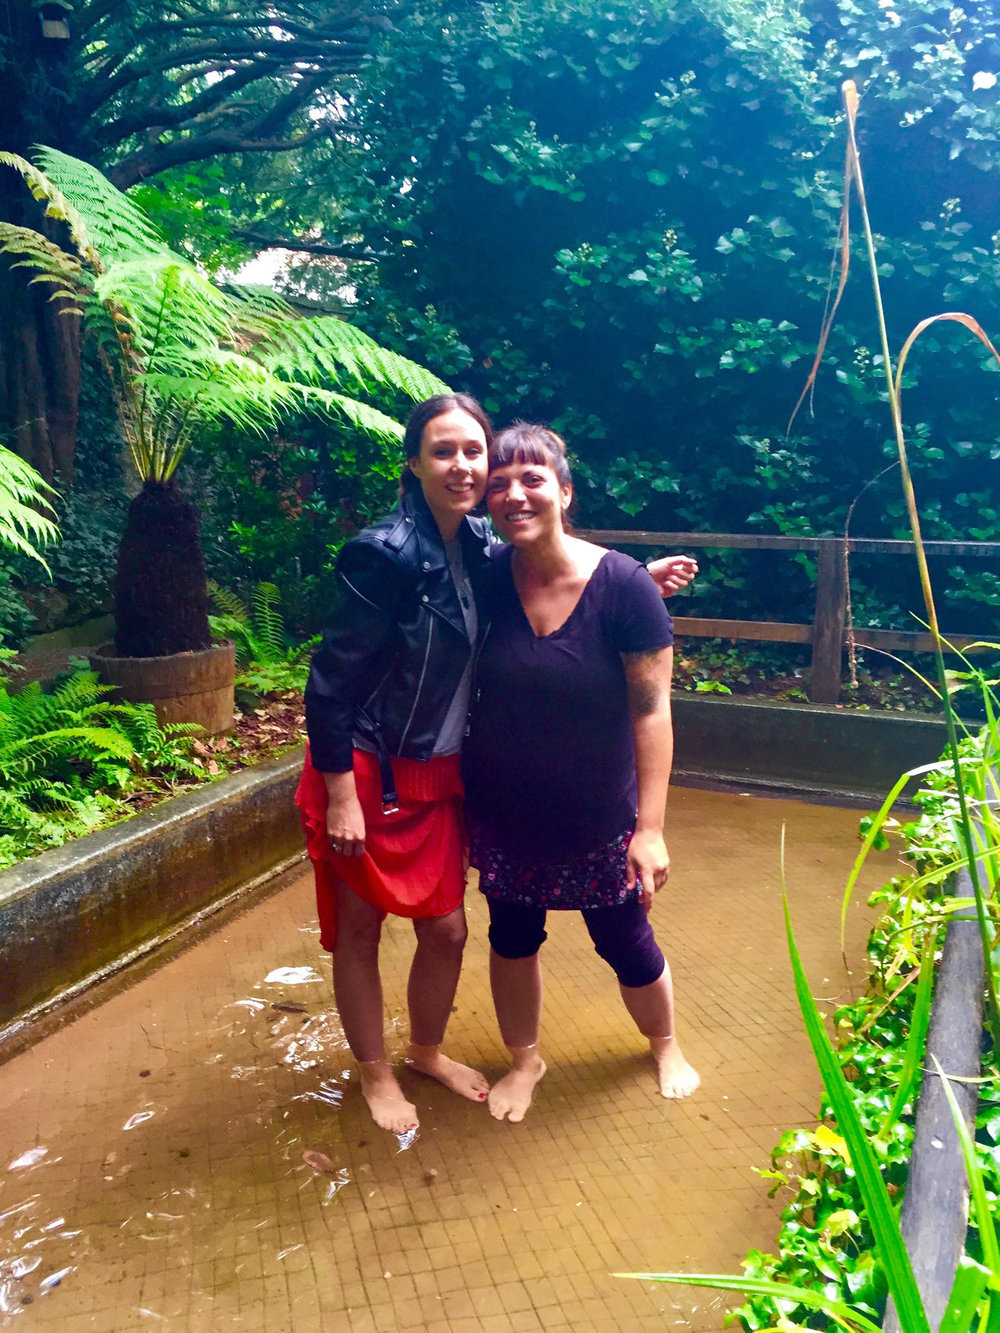 - We met on our Reiki Masters retreat in Glastonbury.  Here we are the day of our Master's attunement grounding in the red spring of the Chalice Well.